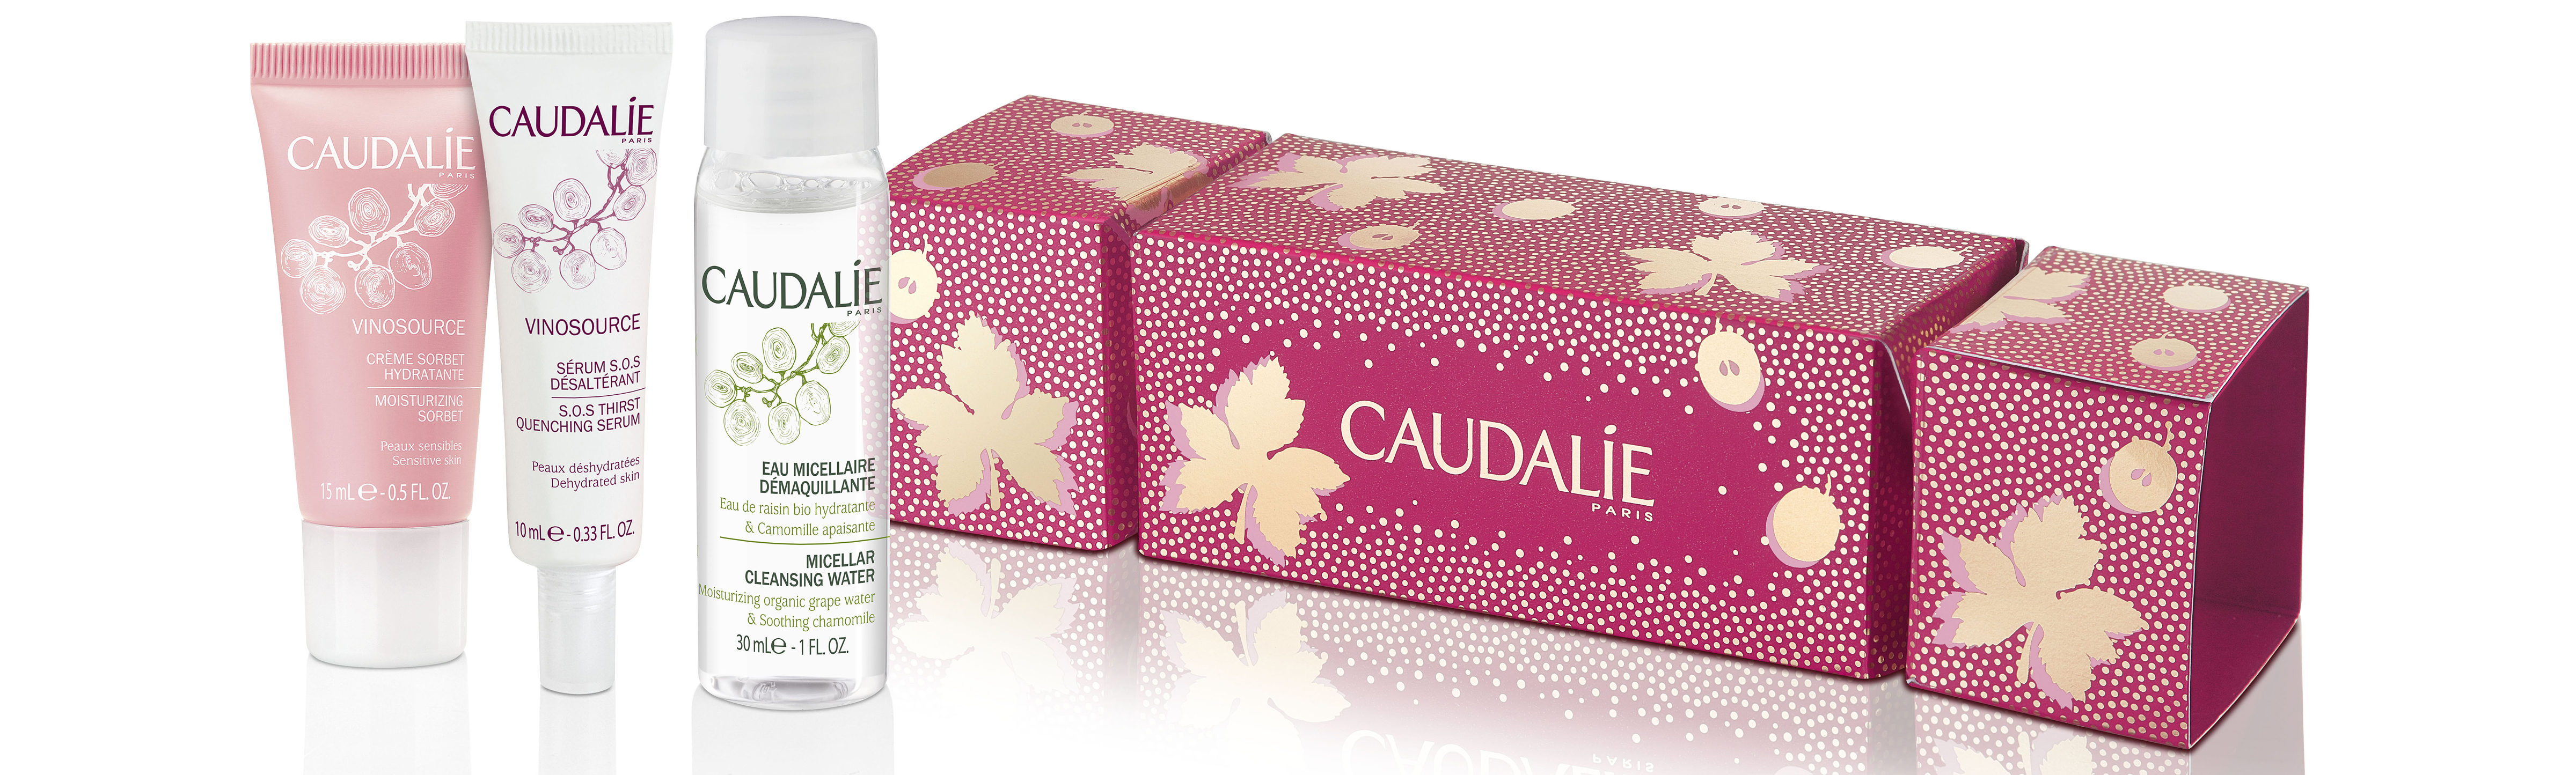 Caudalie Vinosource Christmas Cracker